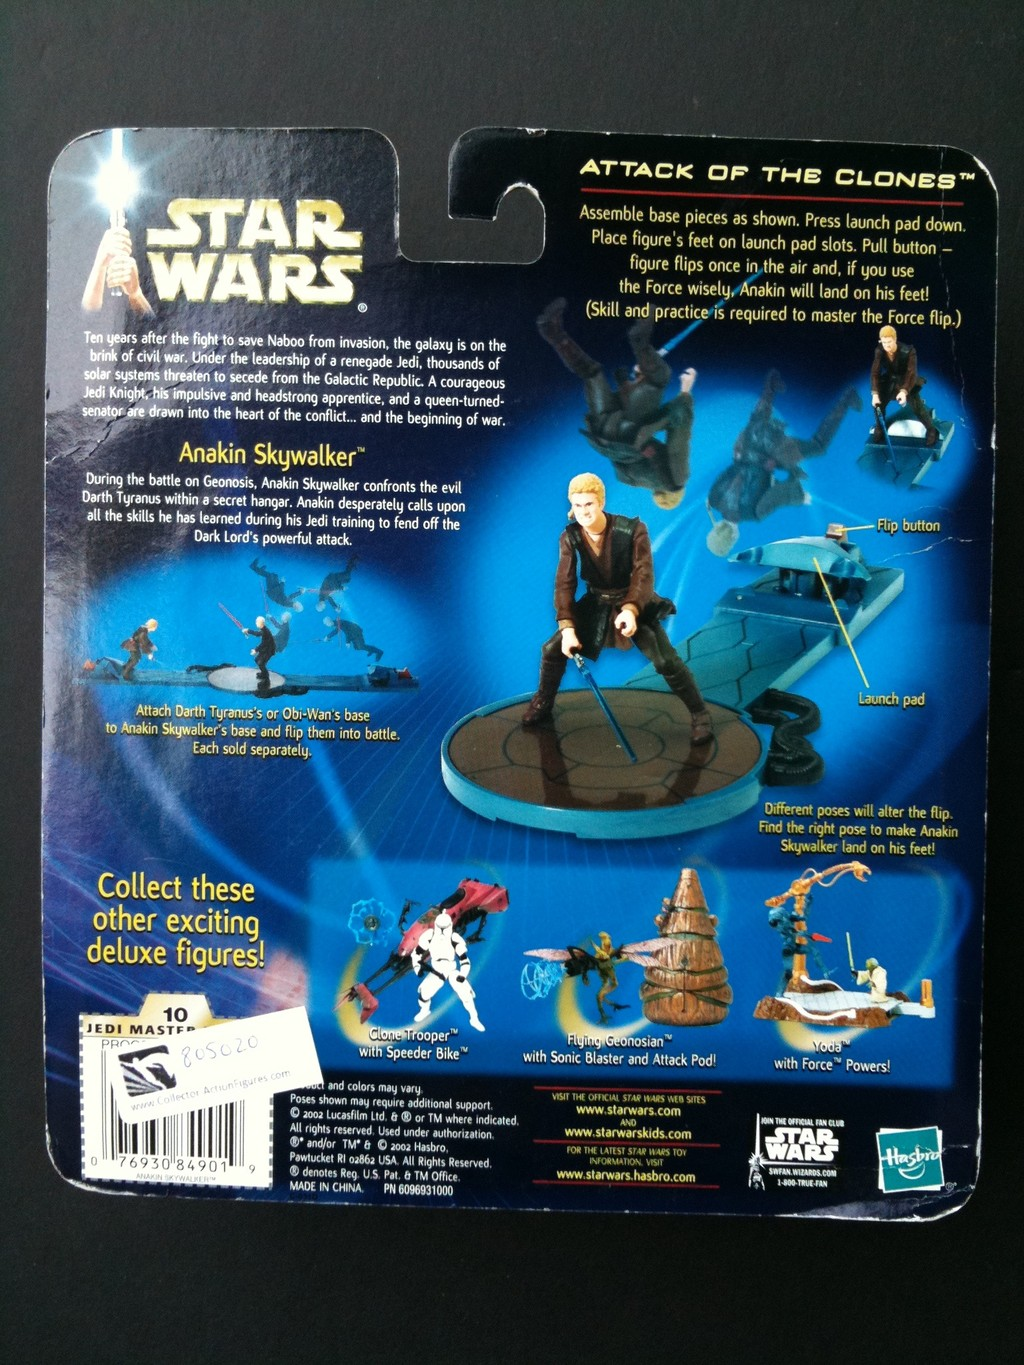 Anakin Skywalker (with Force-Flipping Attack!)